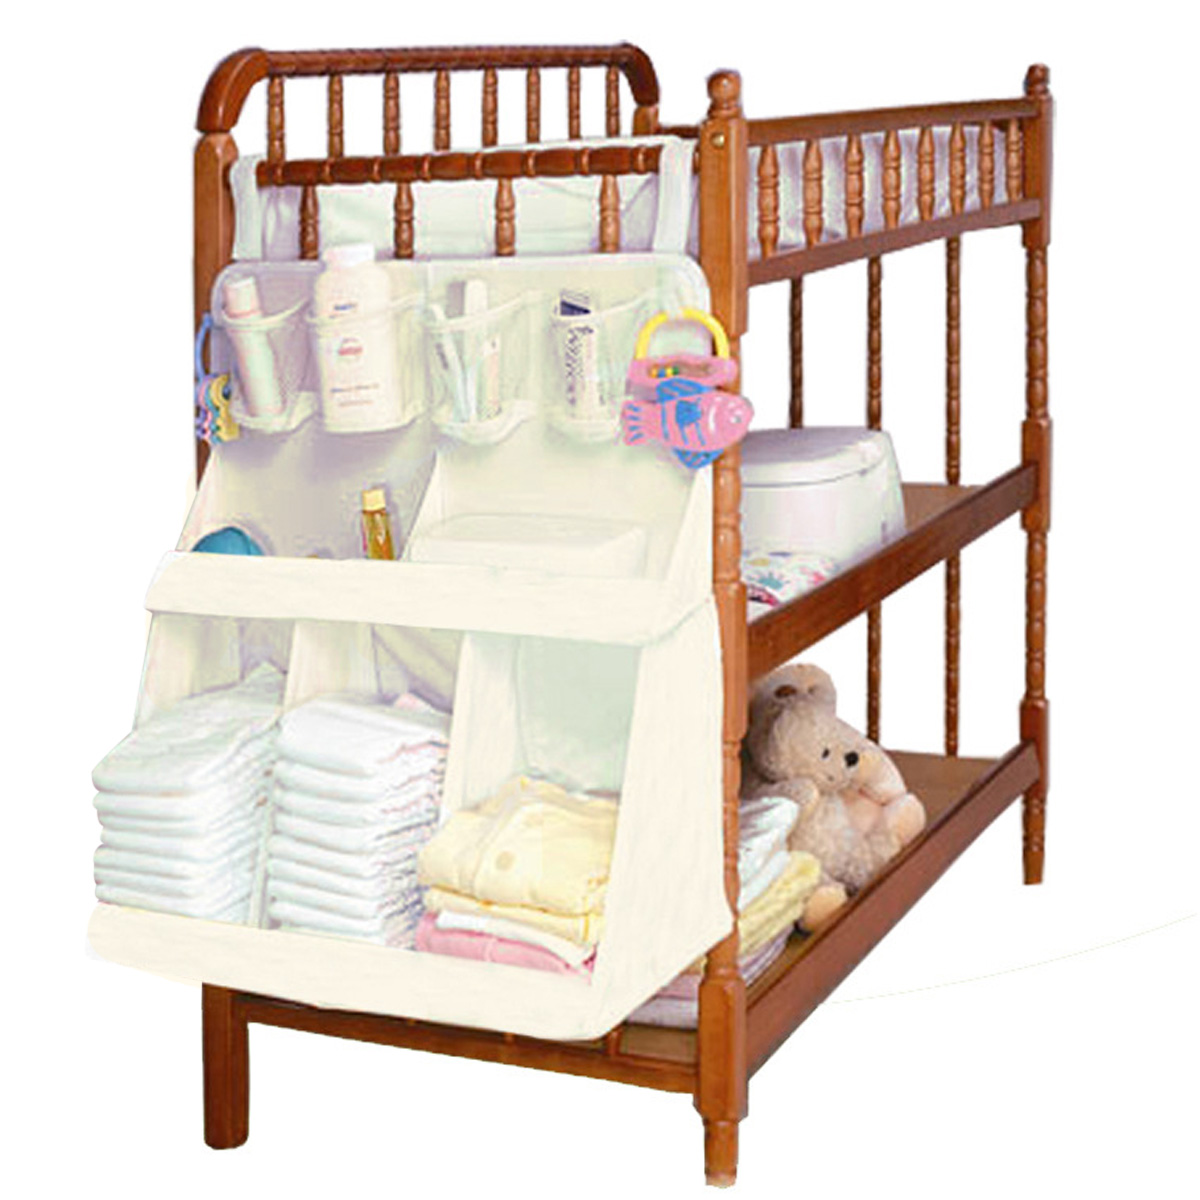 Baby bed online malaysia - Baby Bed Bedding Set Accessories Waterproof Diapers Organizer Baby Crib Children S Bed Hanging Bag Portable Storage